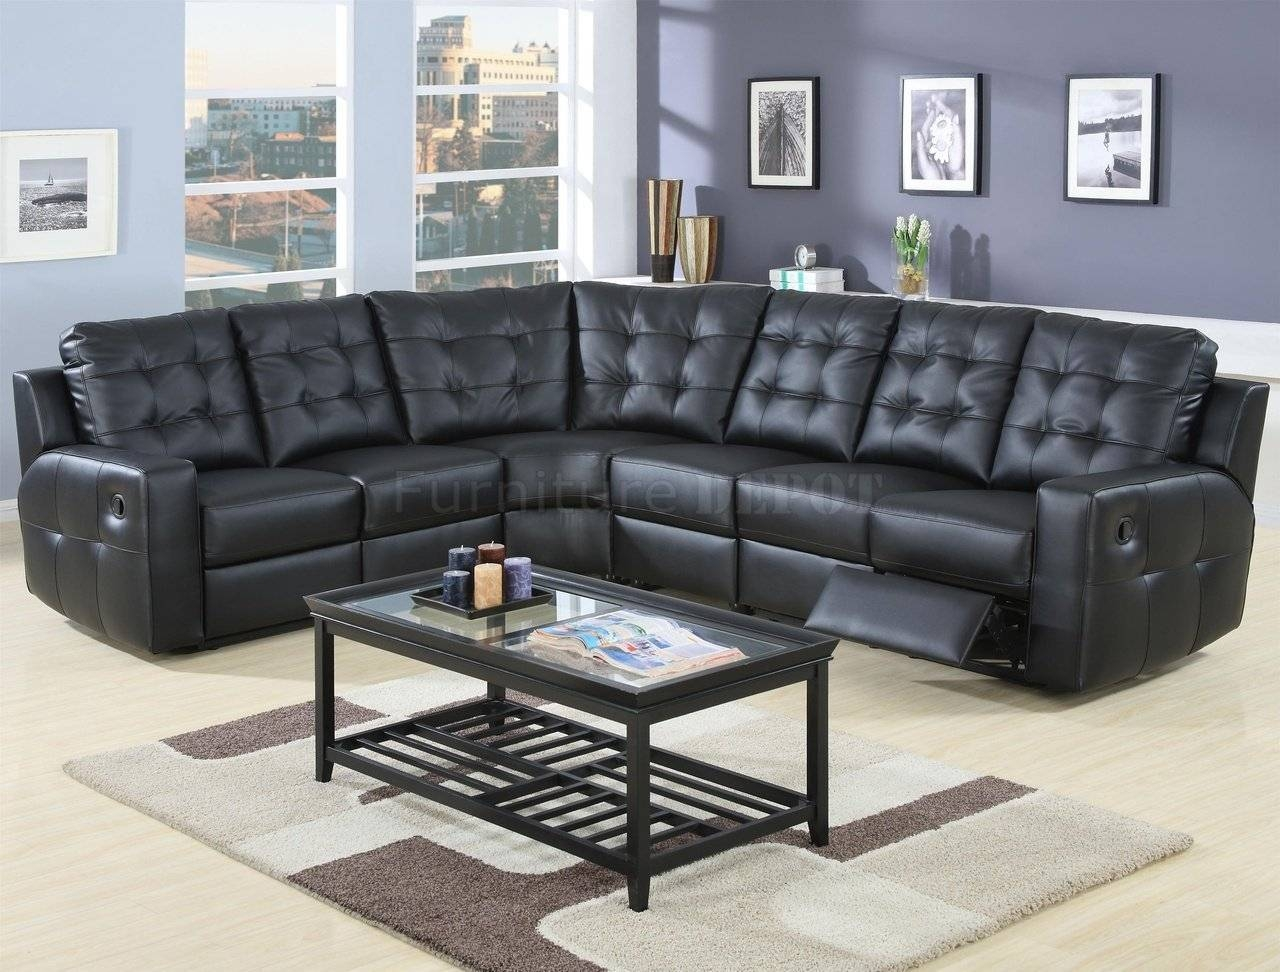 Furniture: Reclining Sectional Sofa | Sectional Reclining Sofas within Curved Sectional Sofa With Recliner (Image 17 of 30)